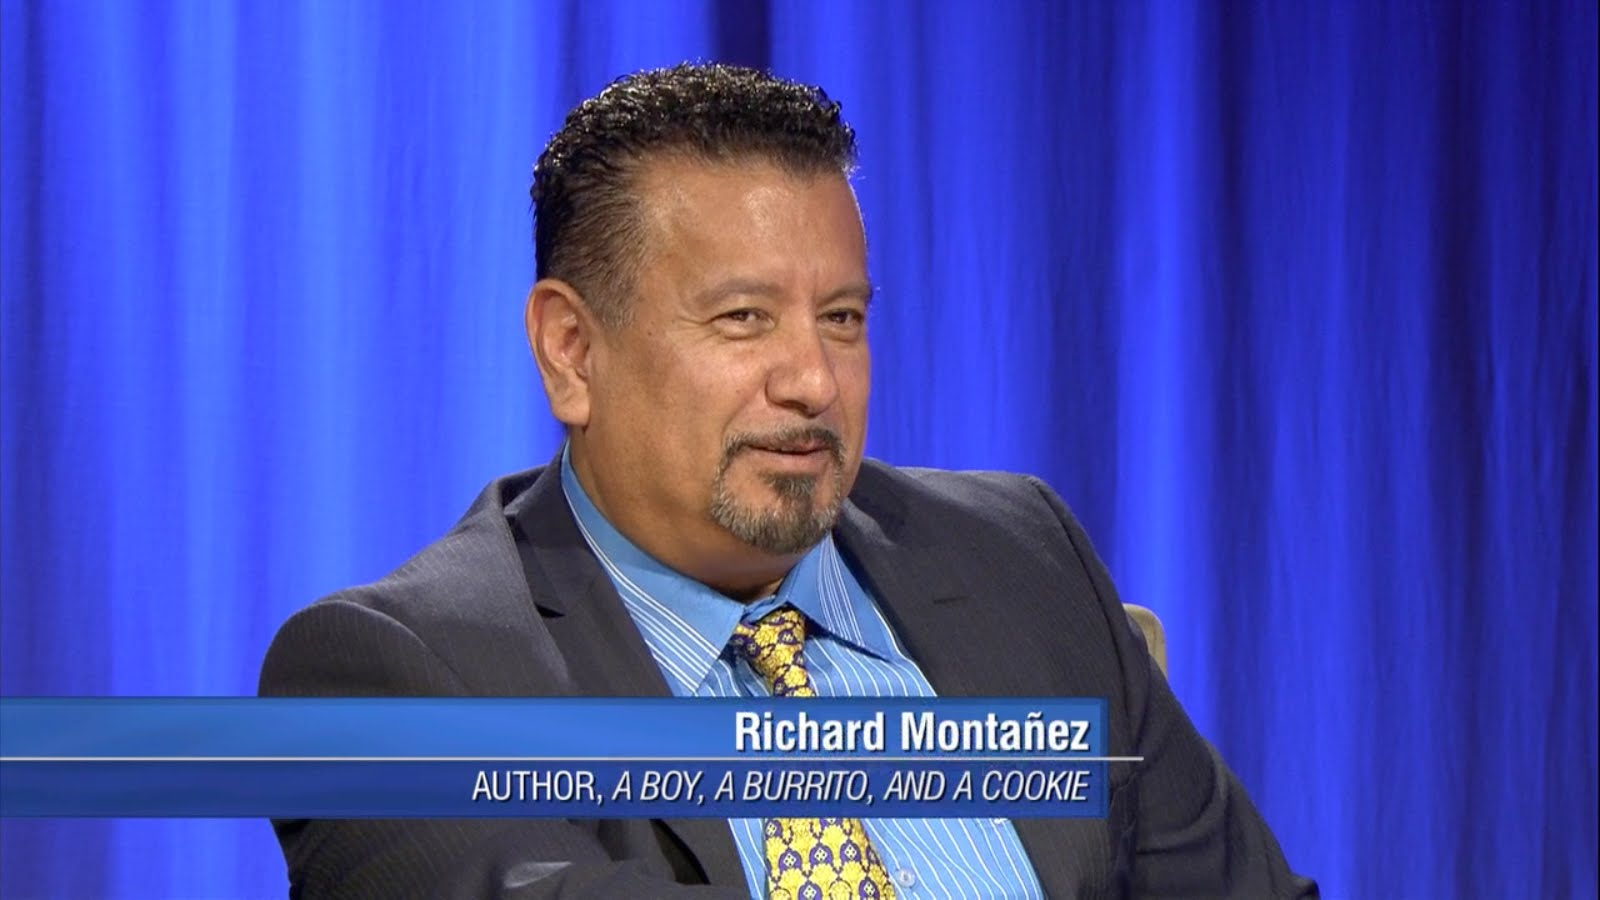 Richard Montanez wywiad Fox News